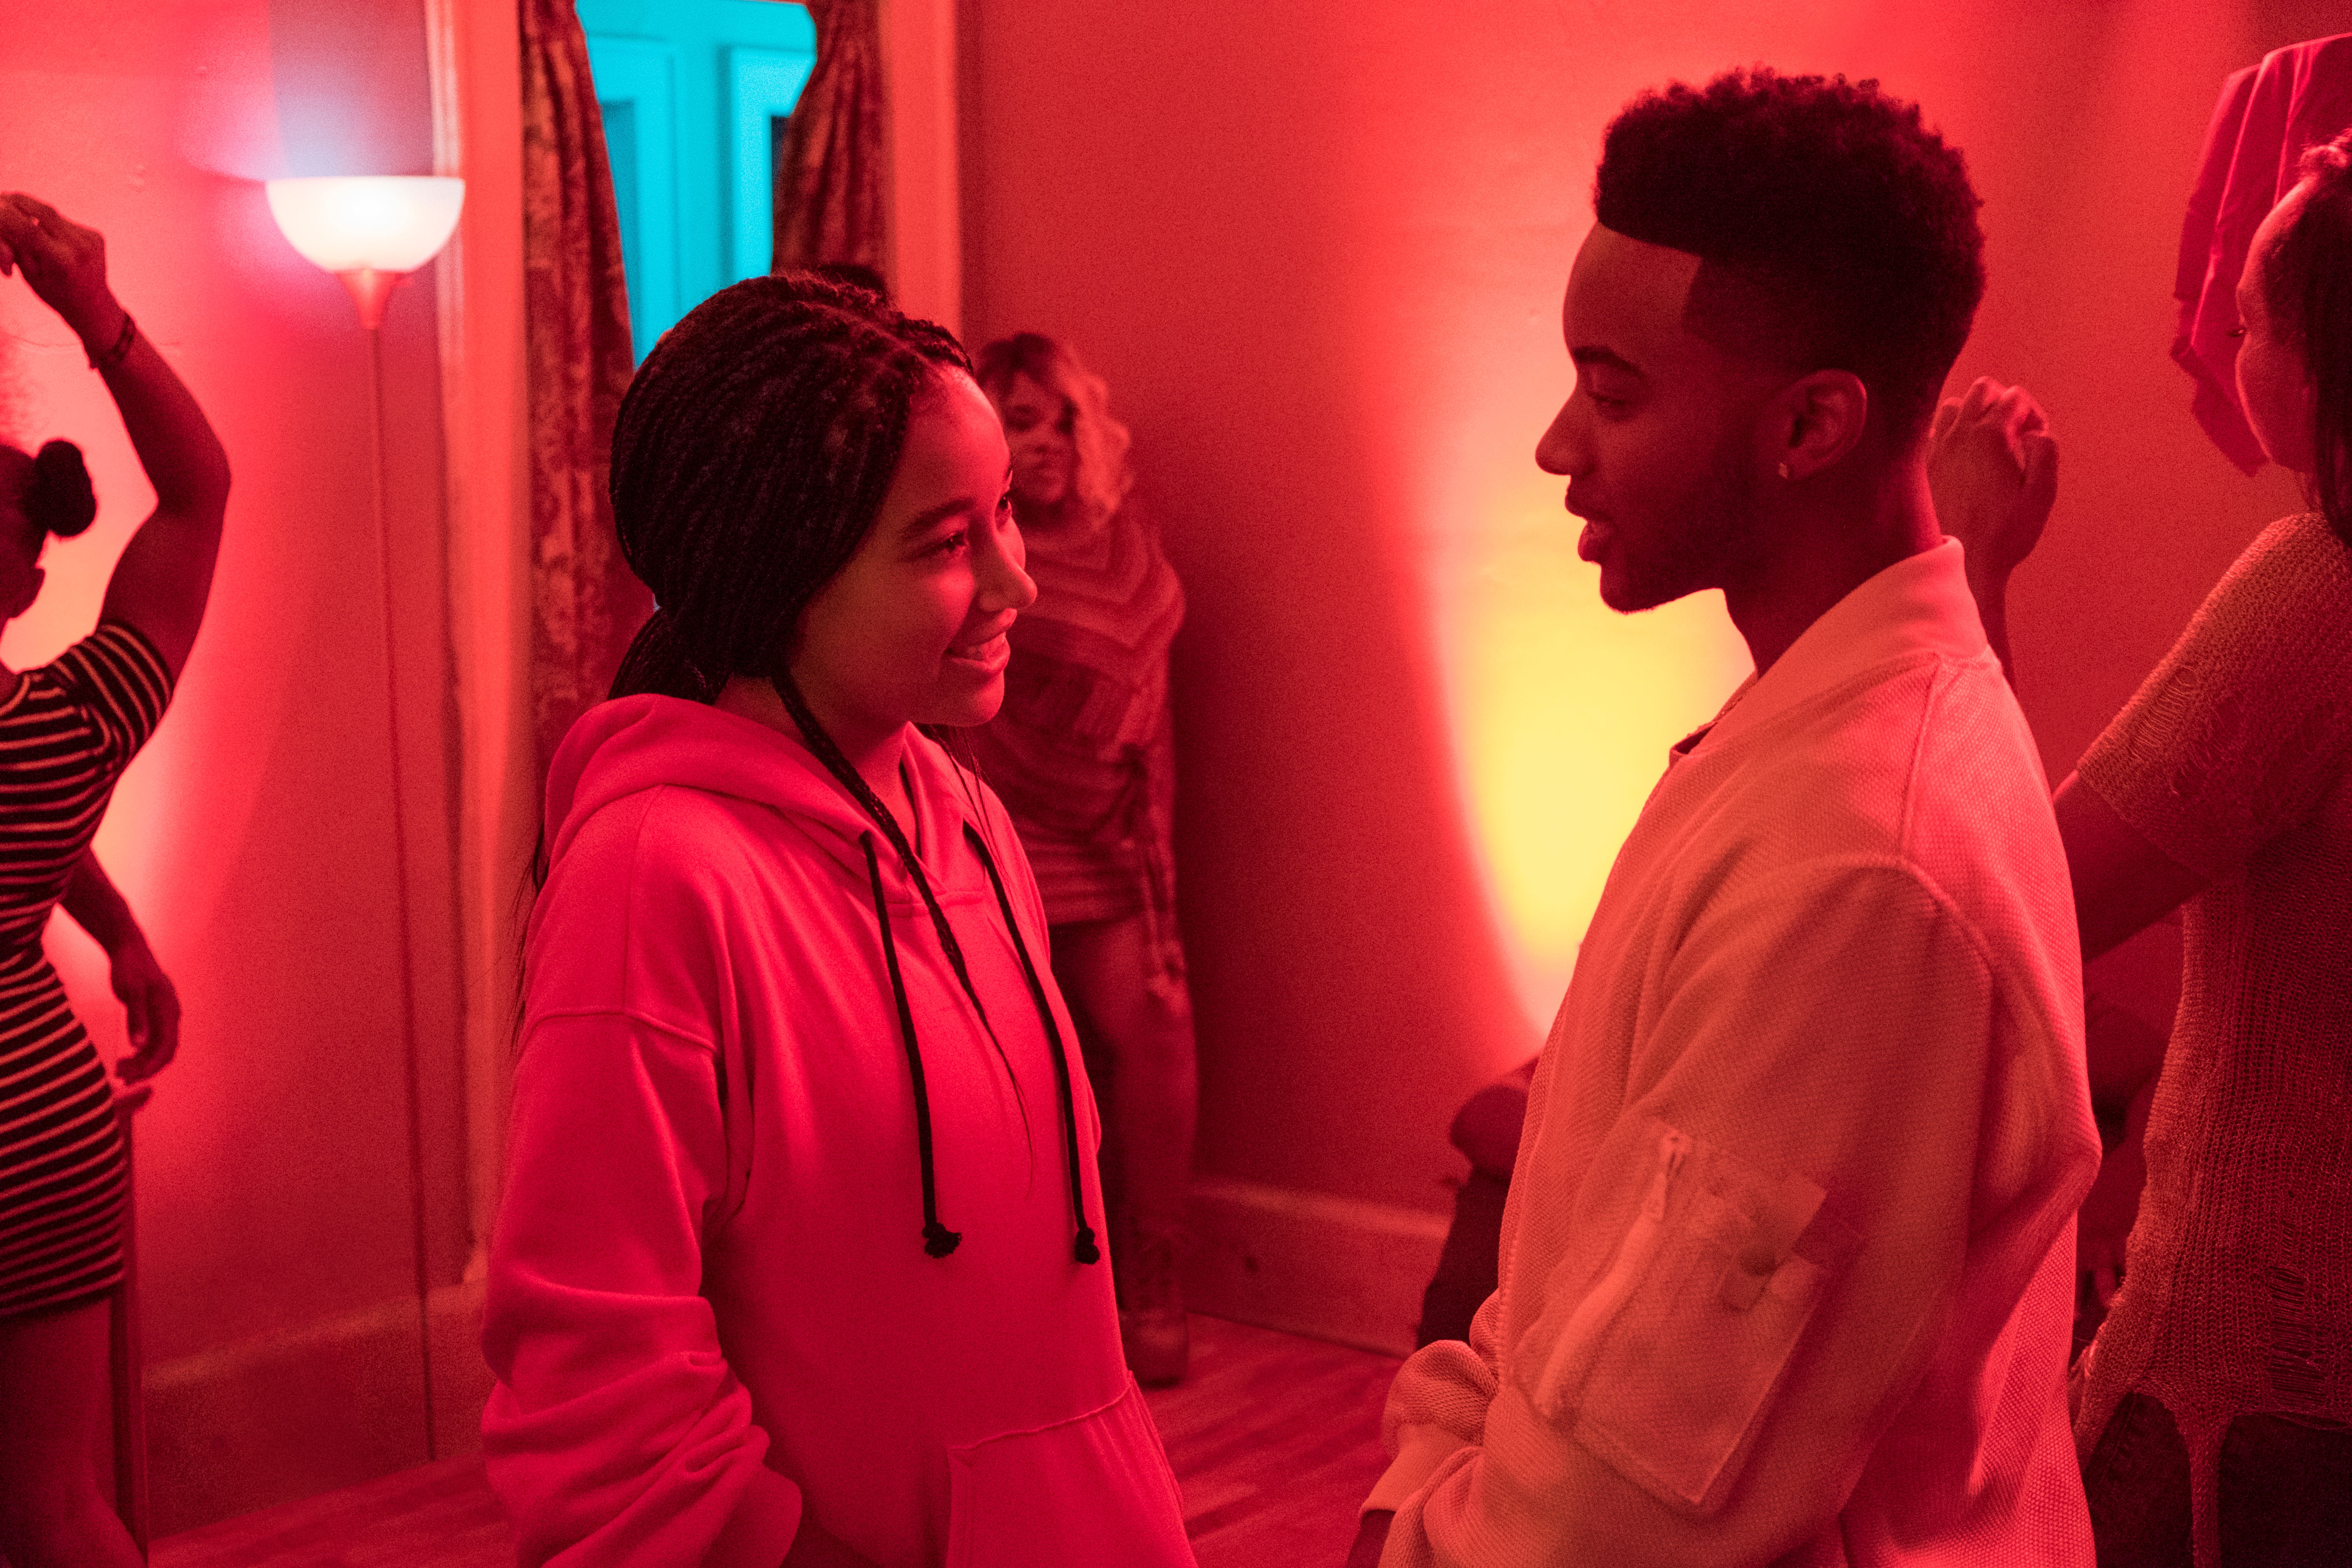 The First Trailer For 'The Hate U Give' Is Finally Here